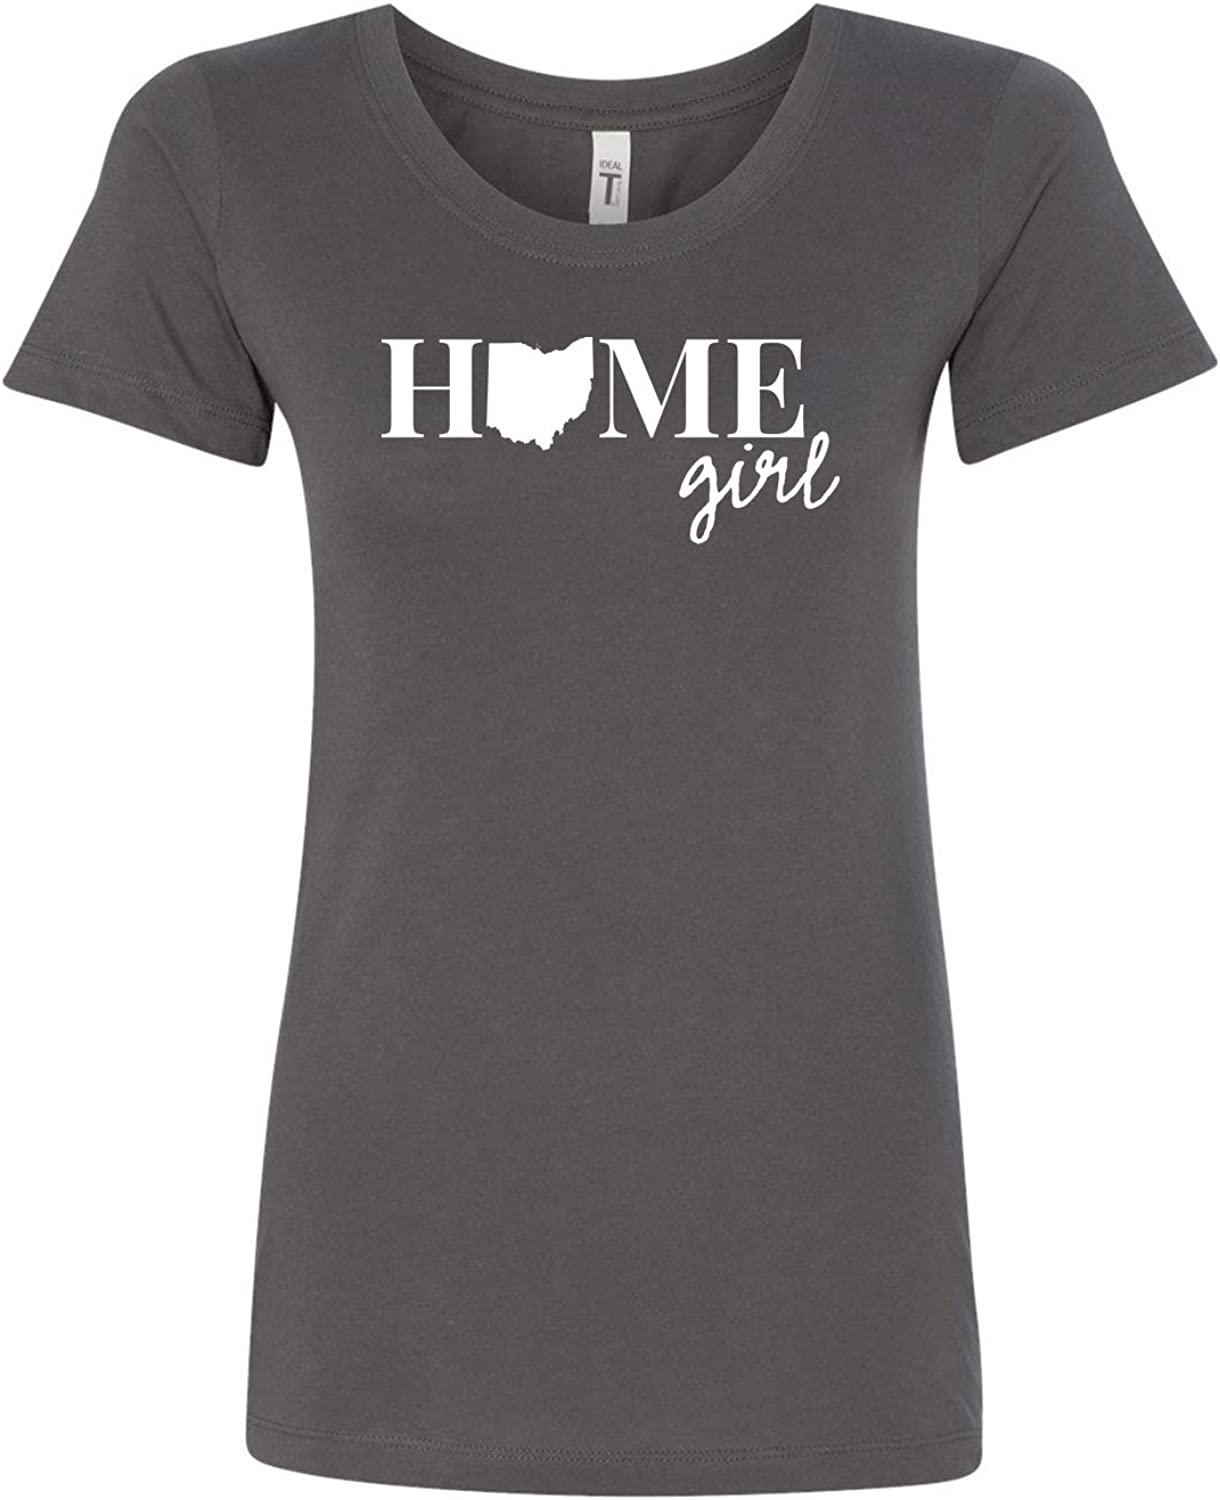 Ohio Home Girl State Love/Pride Ladies Fitted Short Sleeve Fitted Next Level Tee Shirt (Size up in Doubt)